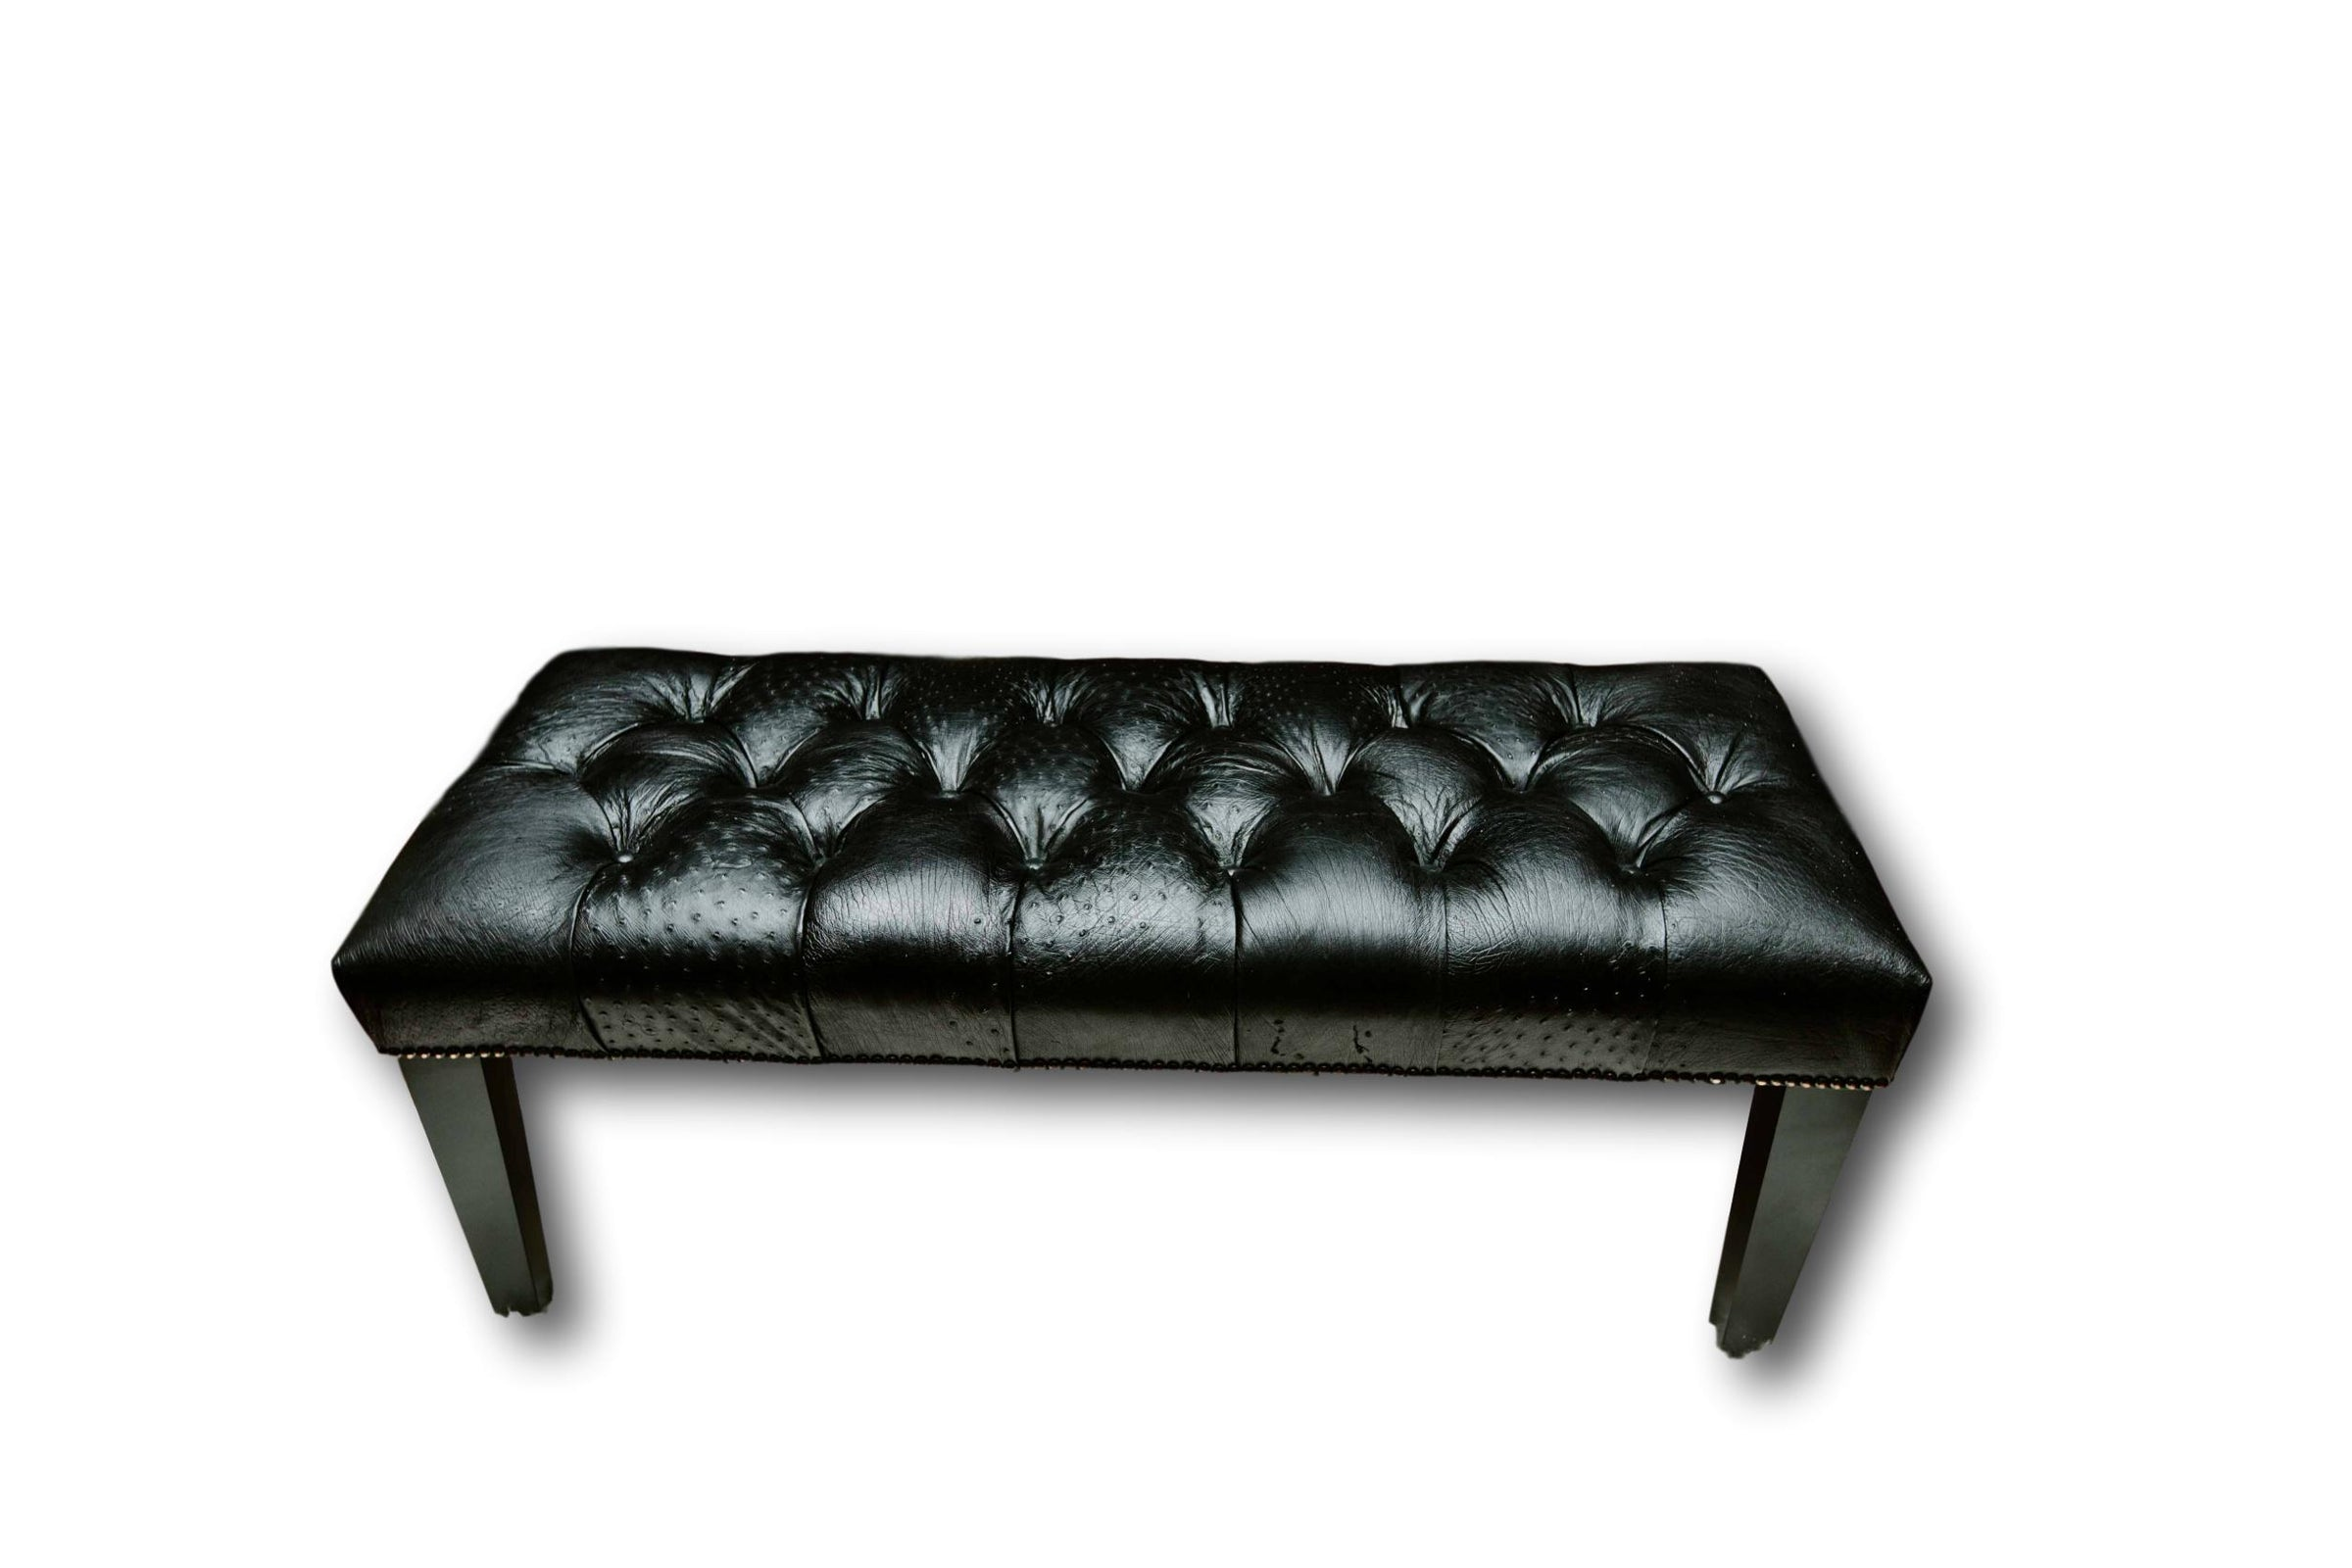 Enjoyable Bench Black Ostrich Leather With Wood Tapered Leg Andrewgaddart Wooden Chair Designs For Living Room Andrewgaddartcom